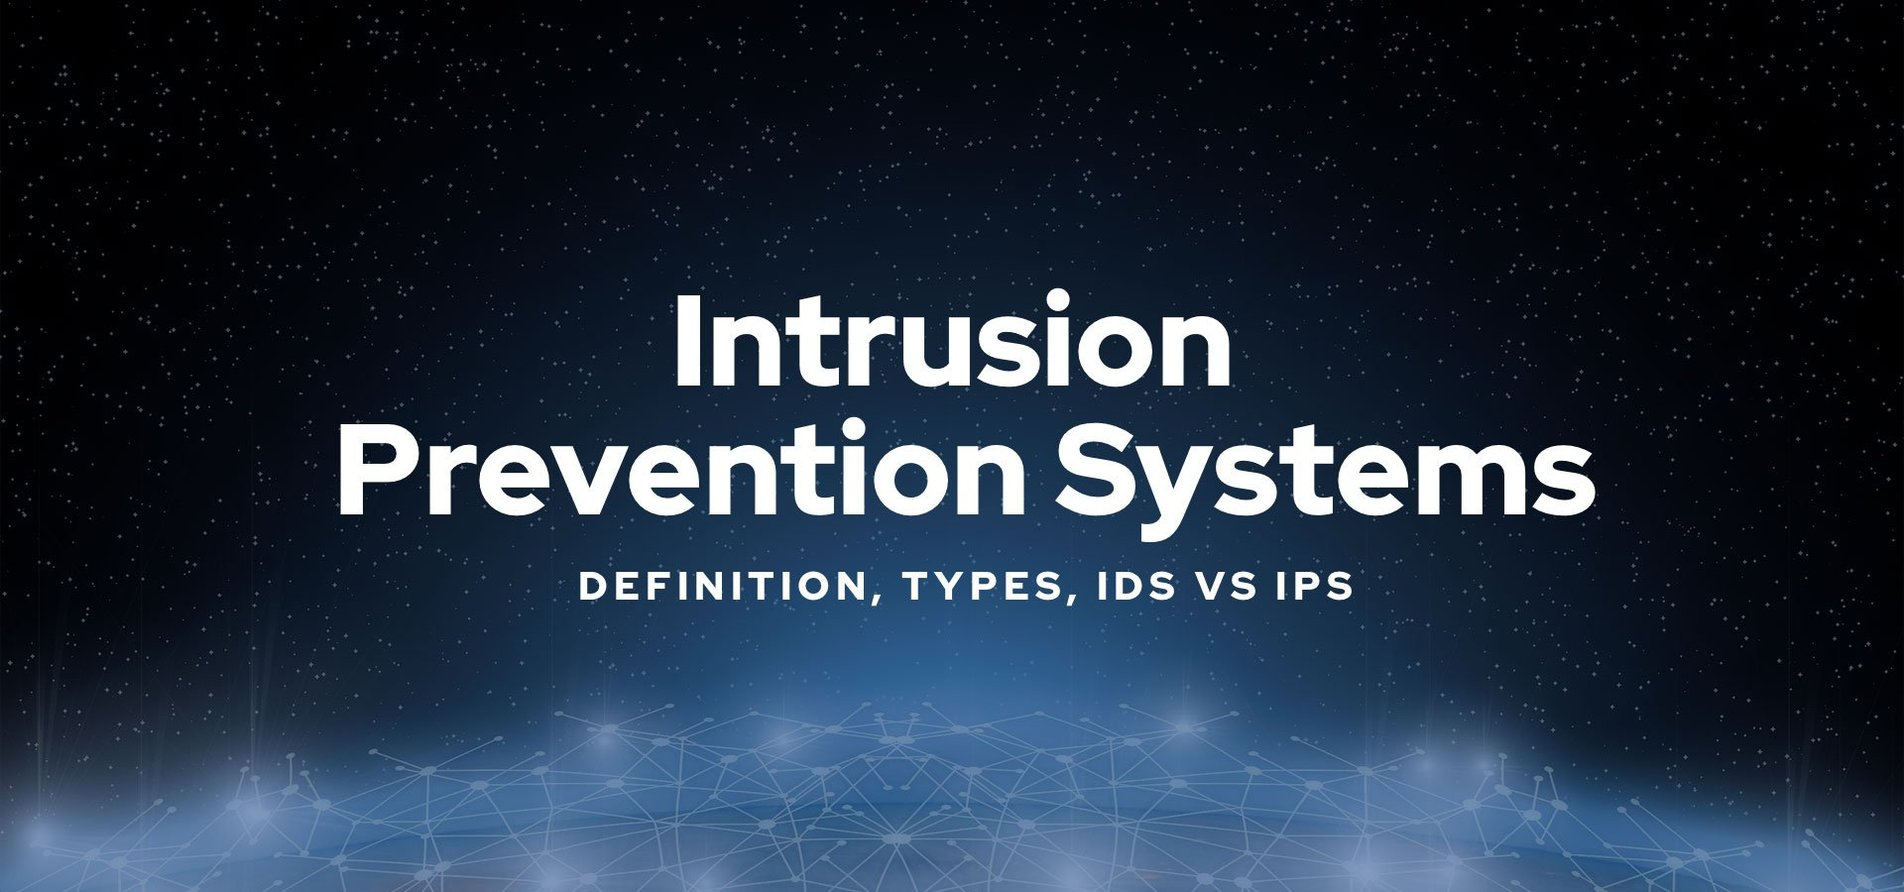 Intrusion Prevention Systems: Definition, Types, IDS vs. IPS.